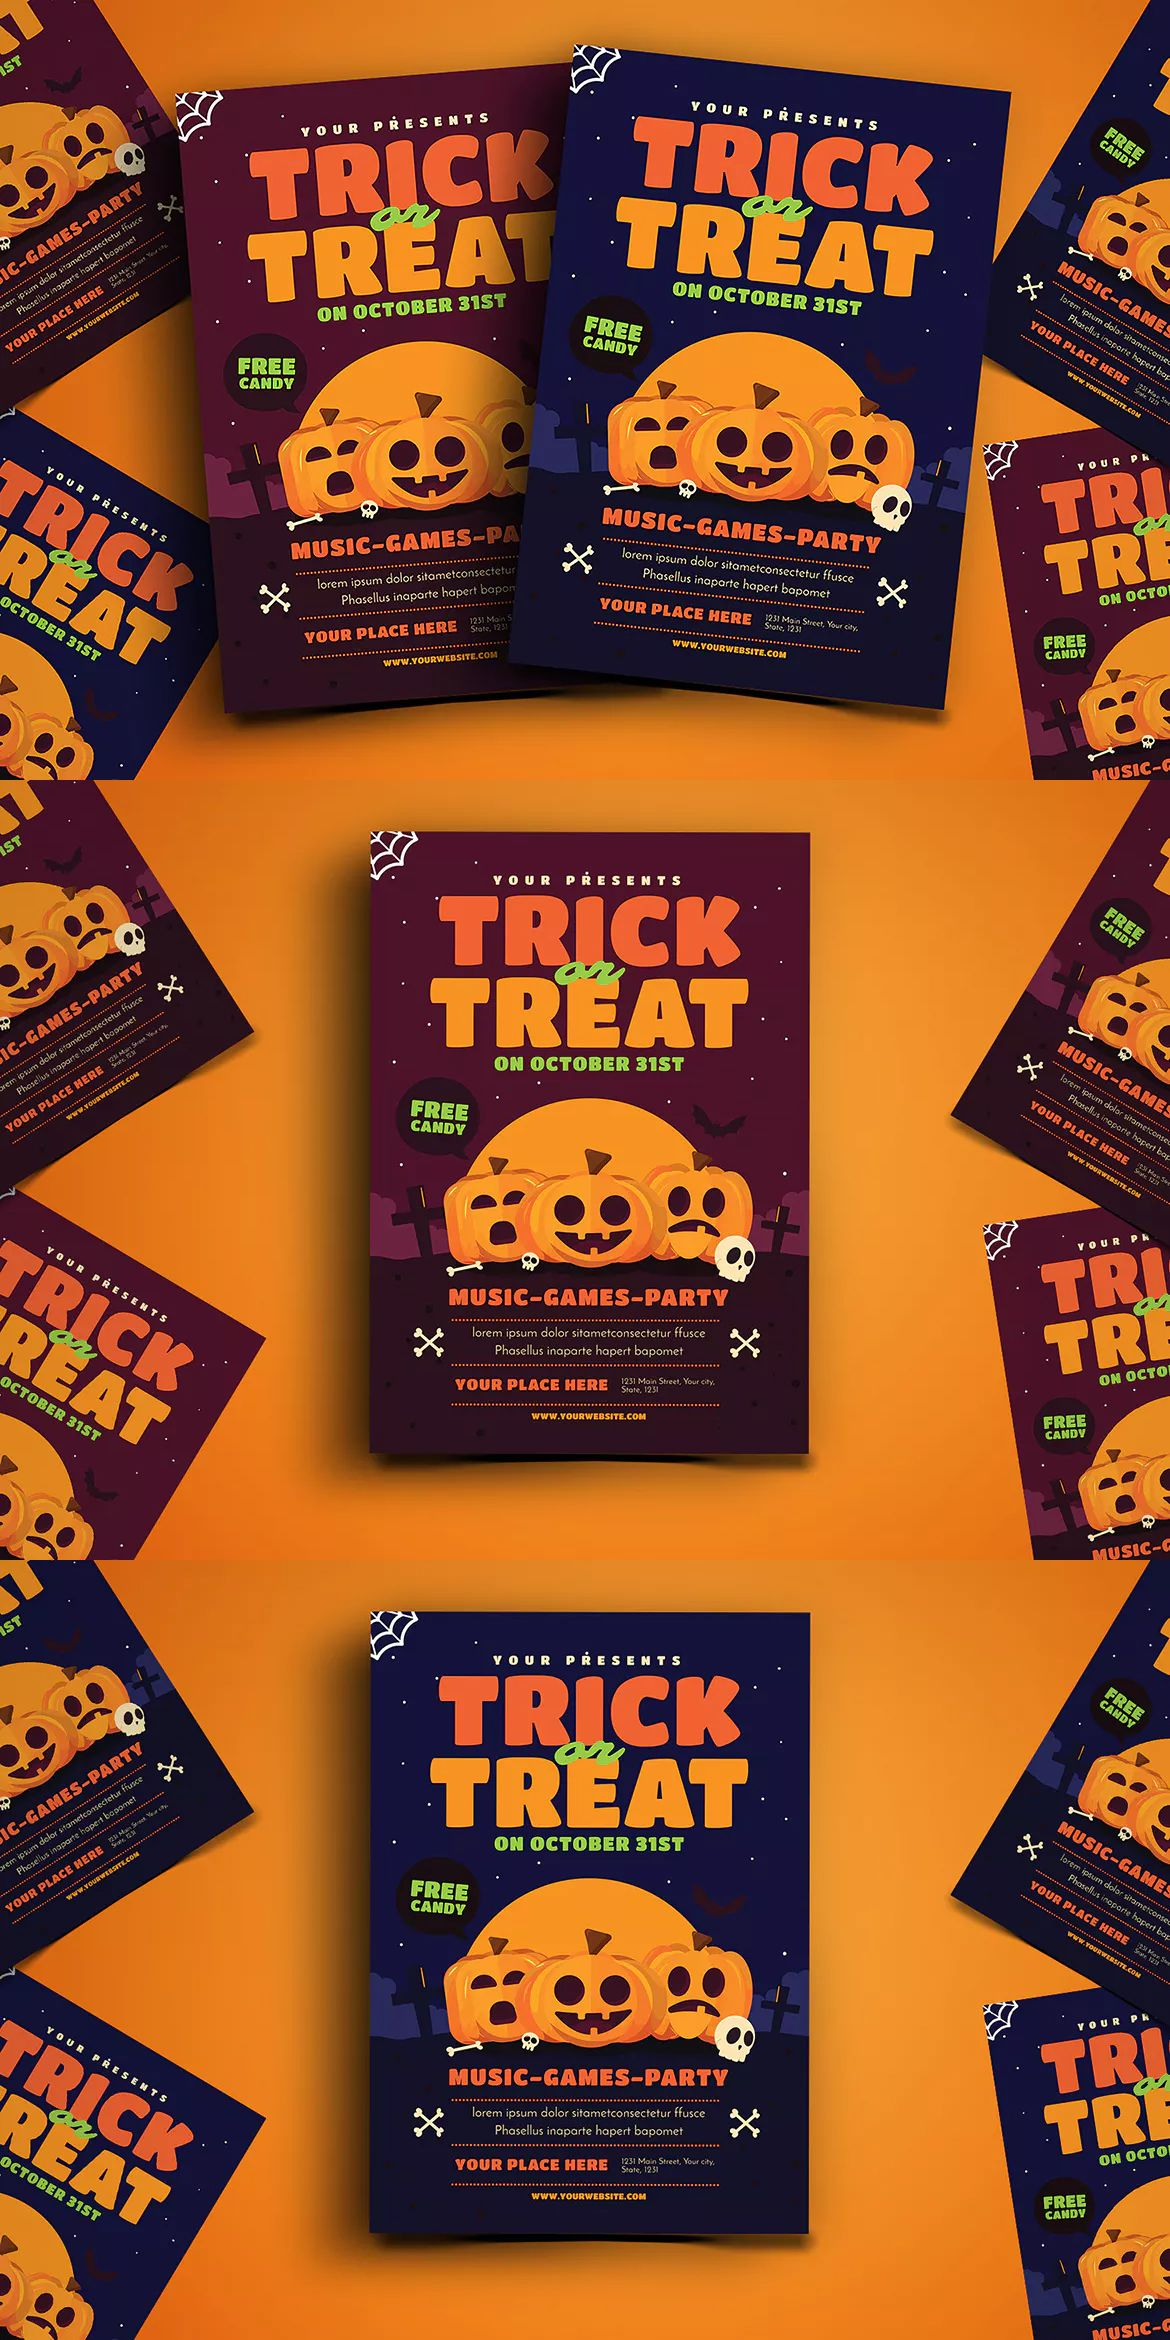 Trick or Treat Halloween Event Flyer Template AI, PSD A4